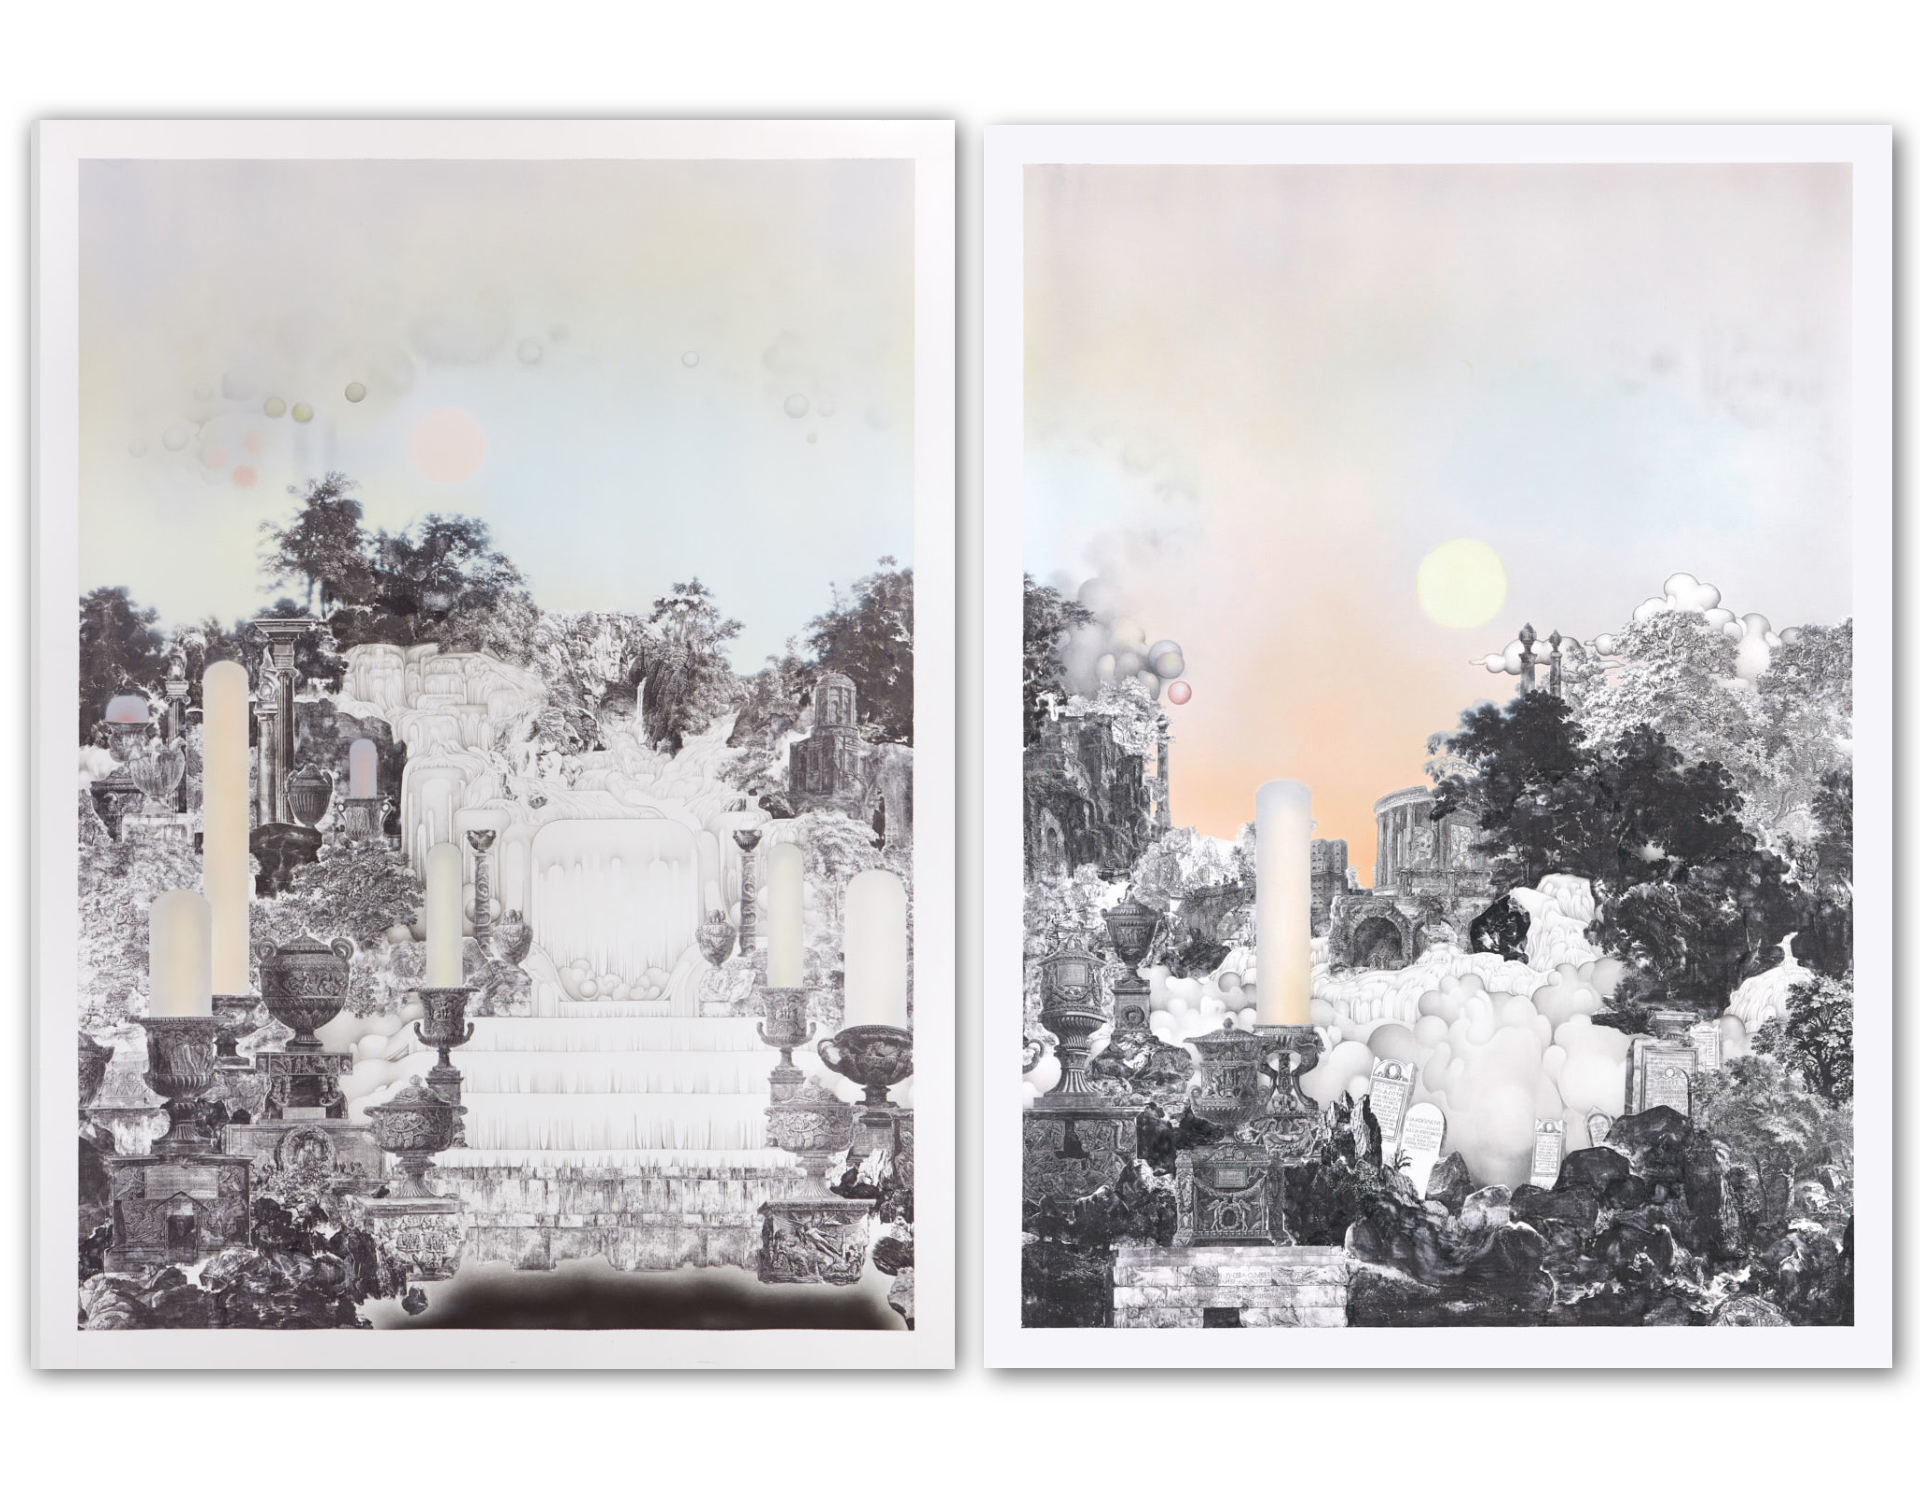 Diptych - Depicting Vistas of a Ruined City with Fragments of Roman Architecture